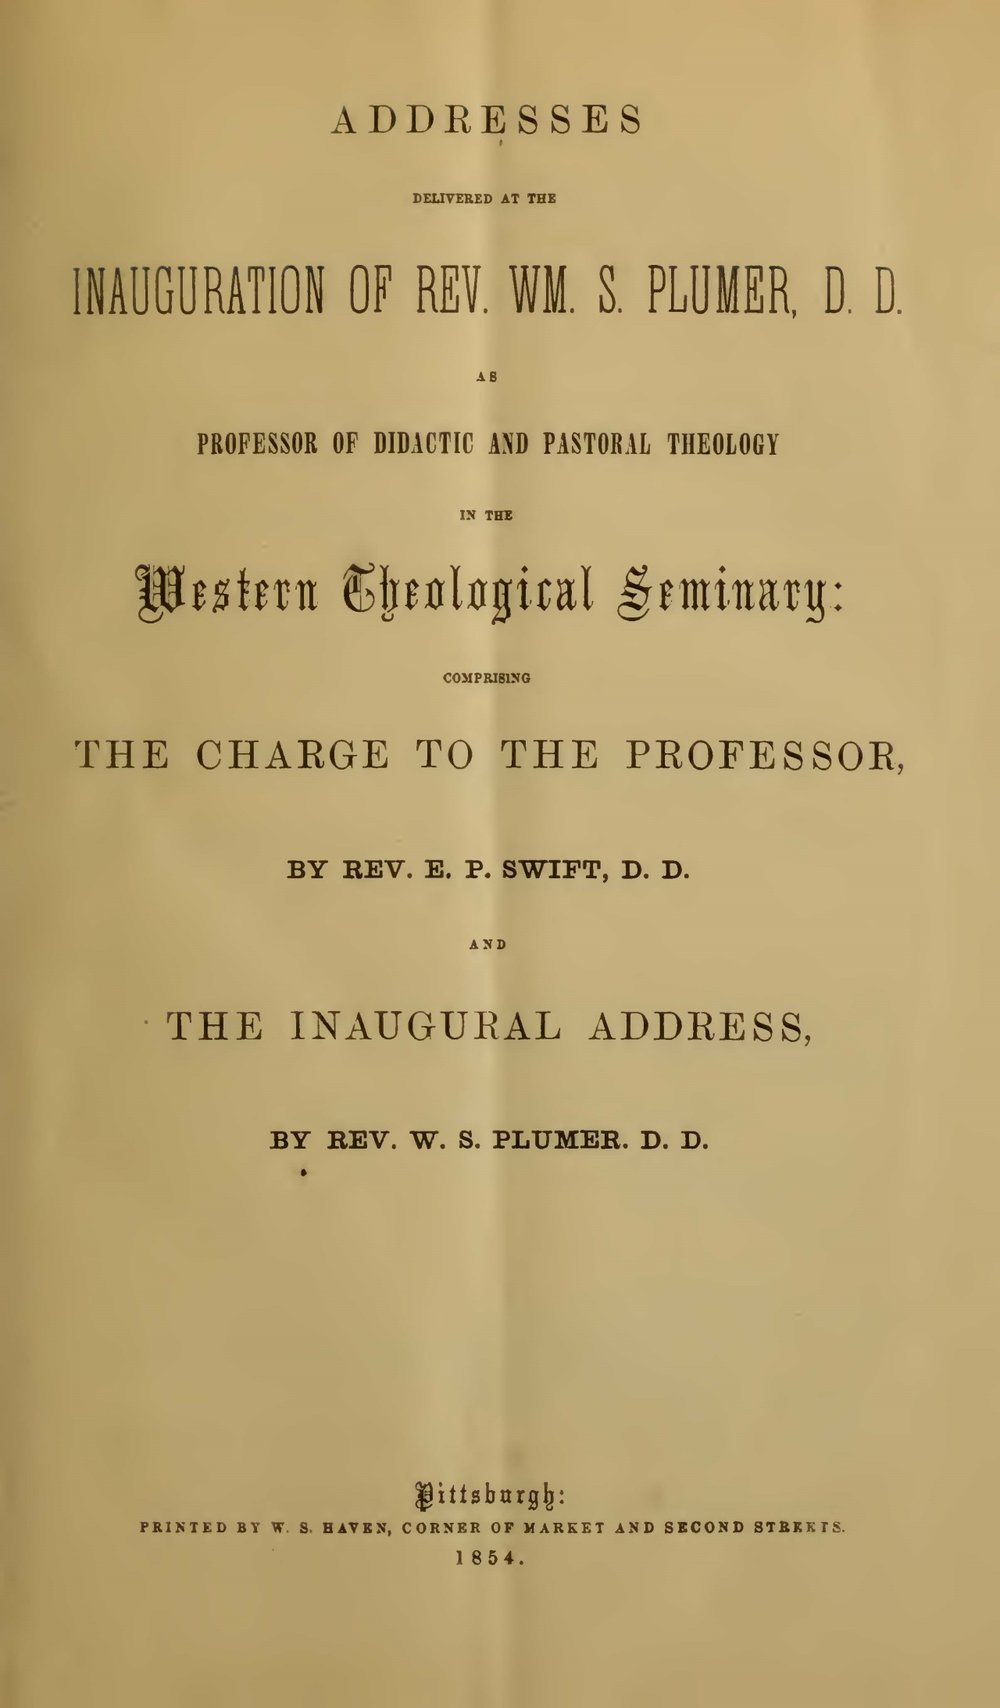 Plumer, William Swan, Addresses Delivered at the Inauguration of Rev. Wm. S. Plumer, D.D. Title Page.jpg